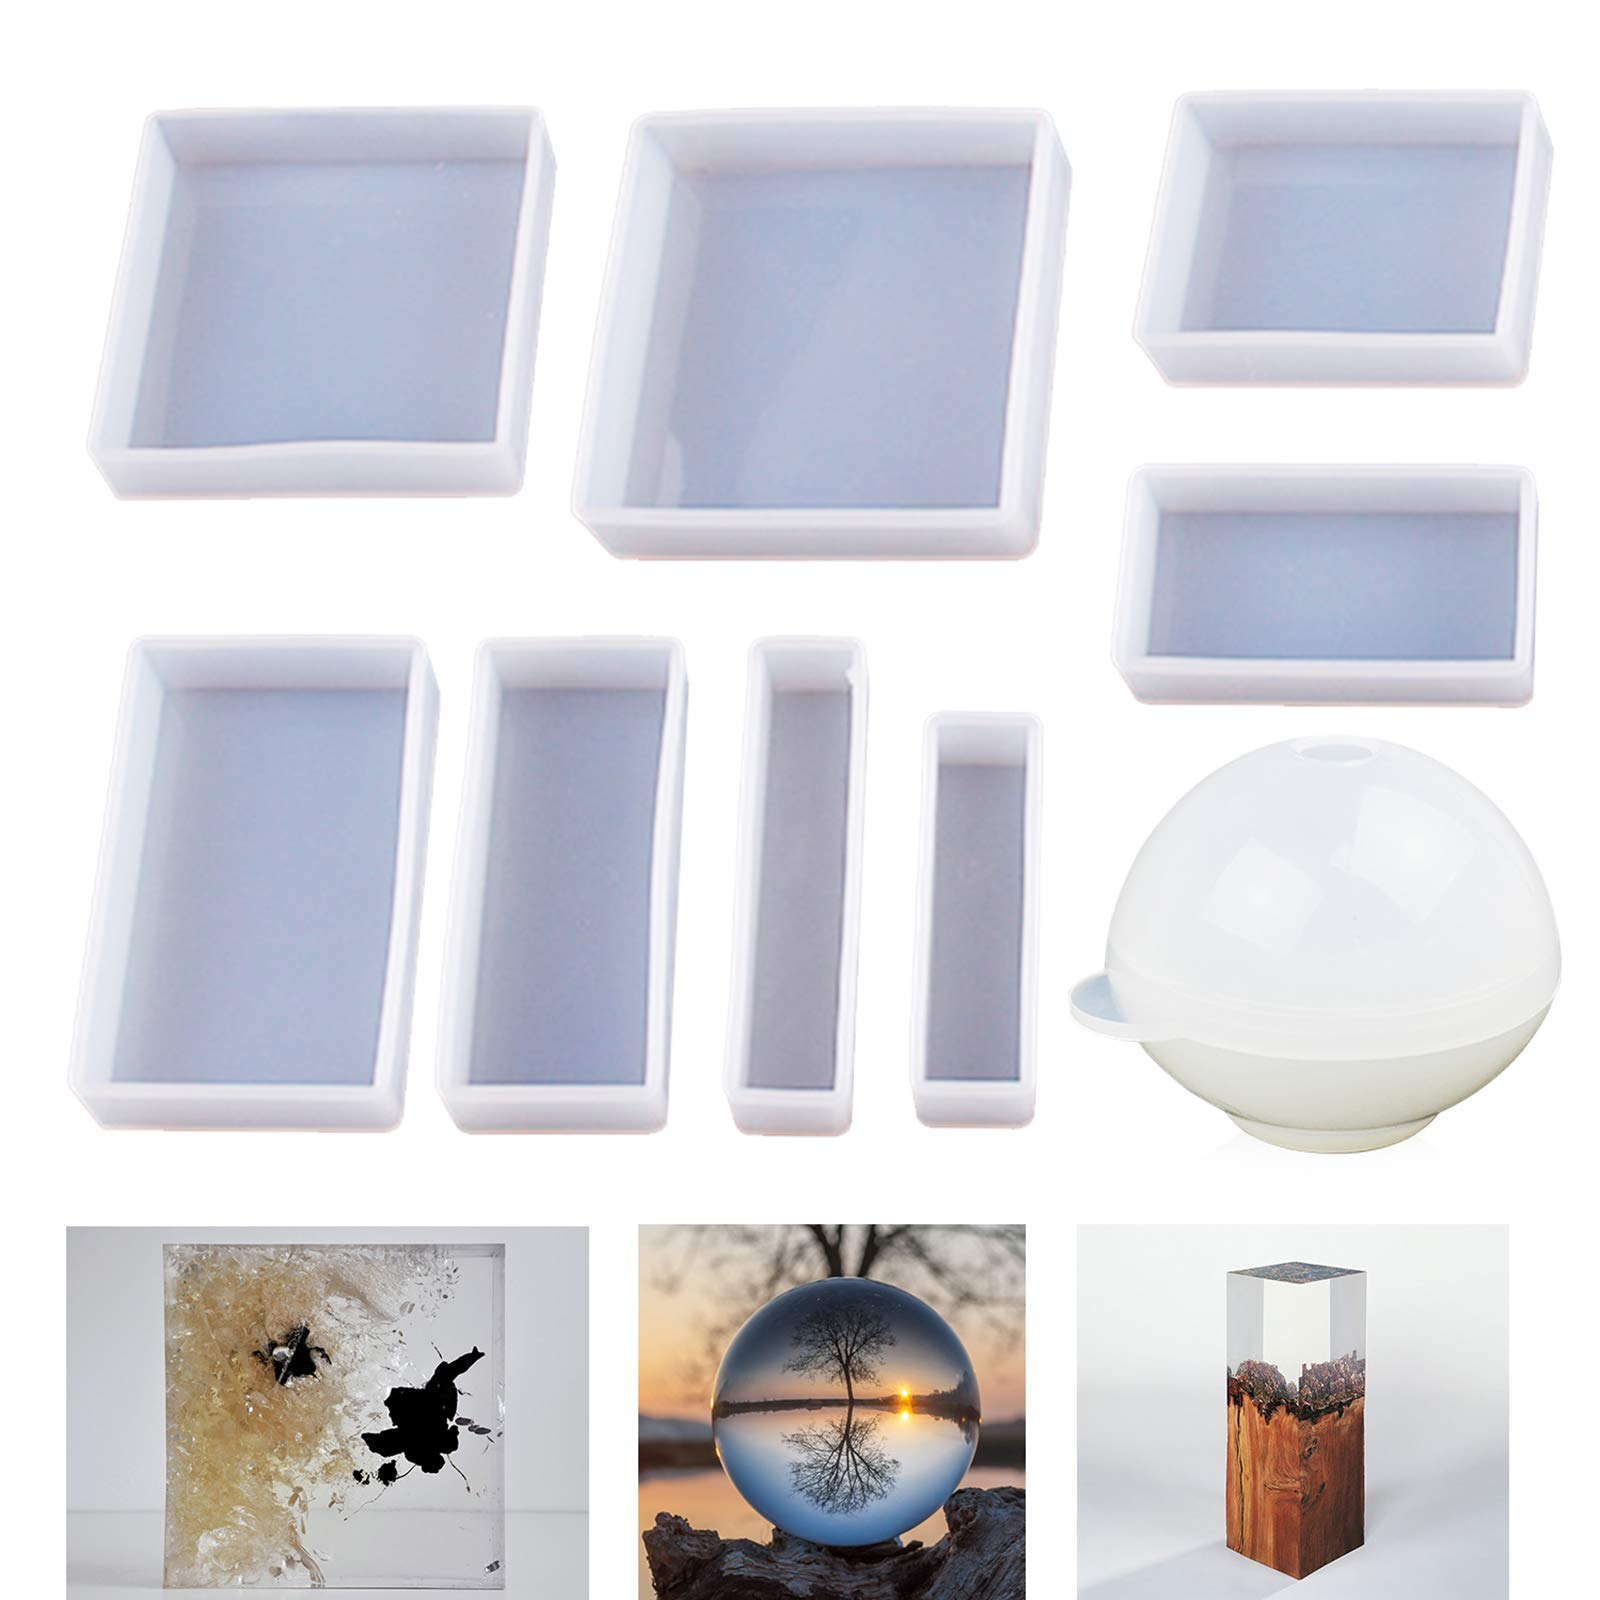 LET'S RESIN Epoxy Resin Molds, Resin Casting Molds Silicone Square Ball Molds 9PCS Different Sizes, Silicone Resin Molds for Resin Jewelry, Soap, Dried Flower Leaf, Insect Specimen DIY Fans